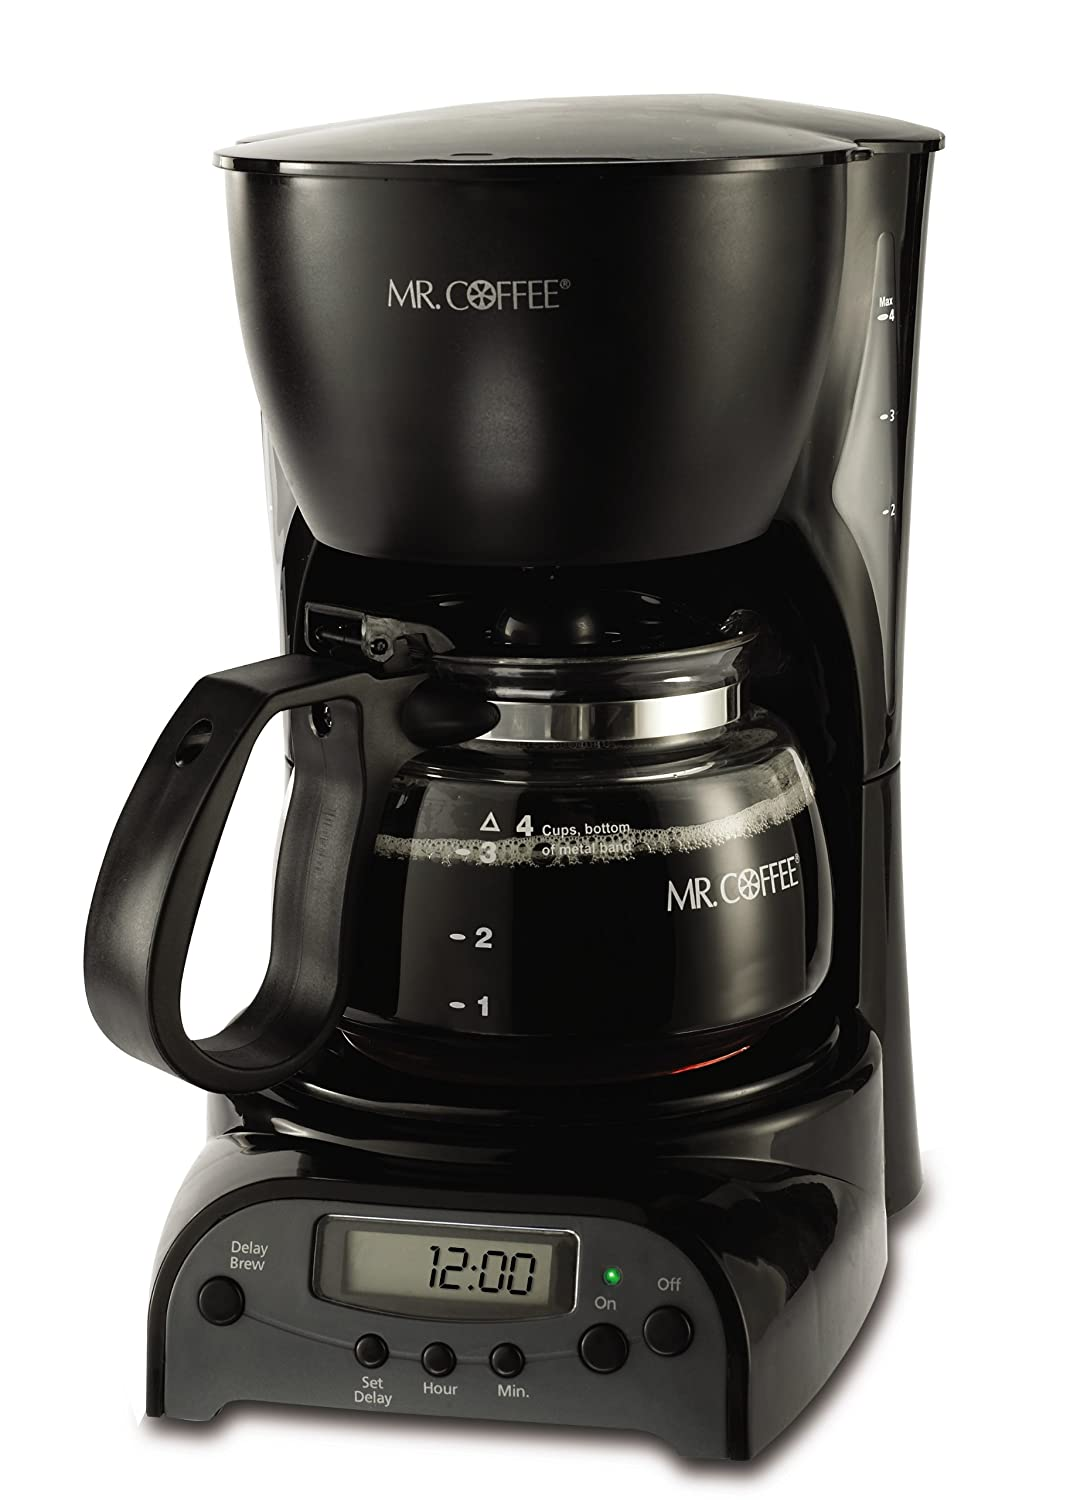 Mr coffee drx5 4 cup programmable coffeemaker coffee maker How to make coffee with a coffee maker